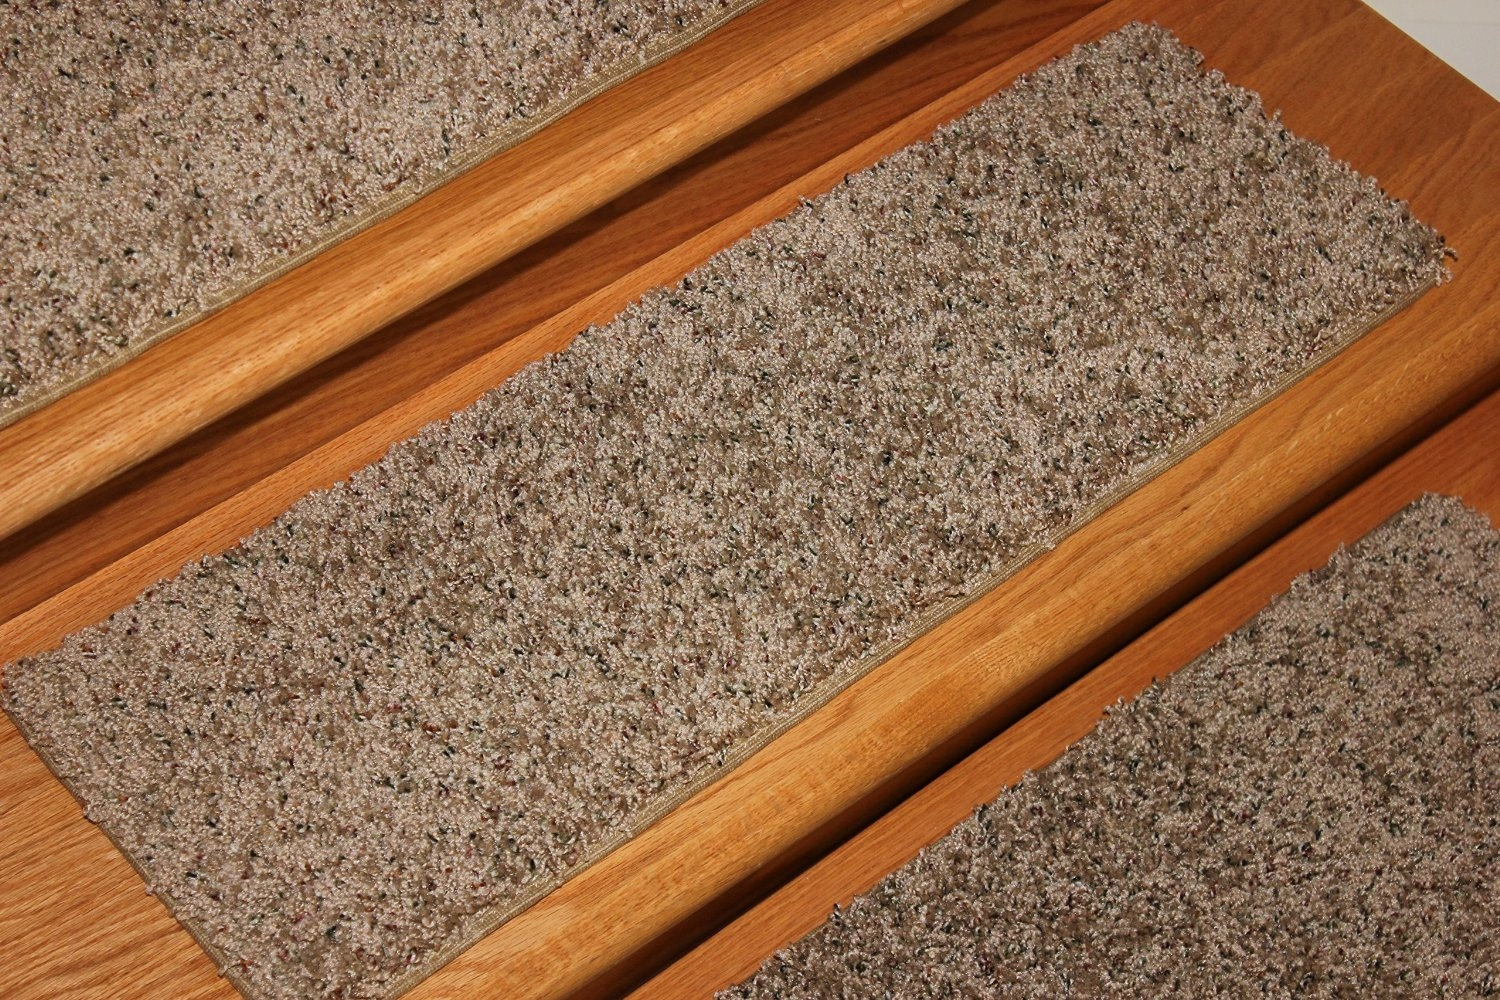 Stair Treads Etsy Throughout Rectangular Stair Tread Rugs (Image 15 of 15)